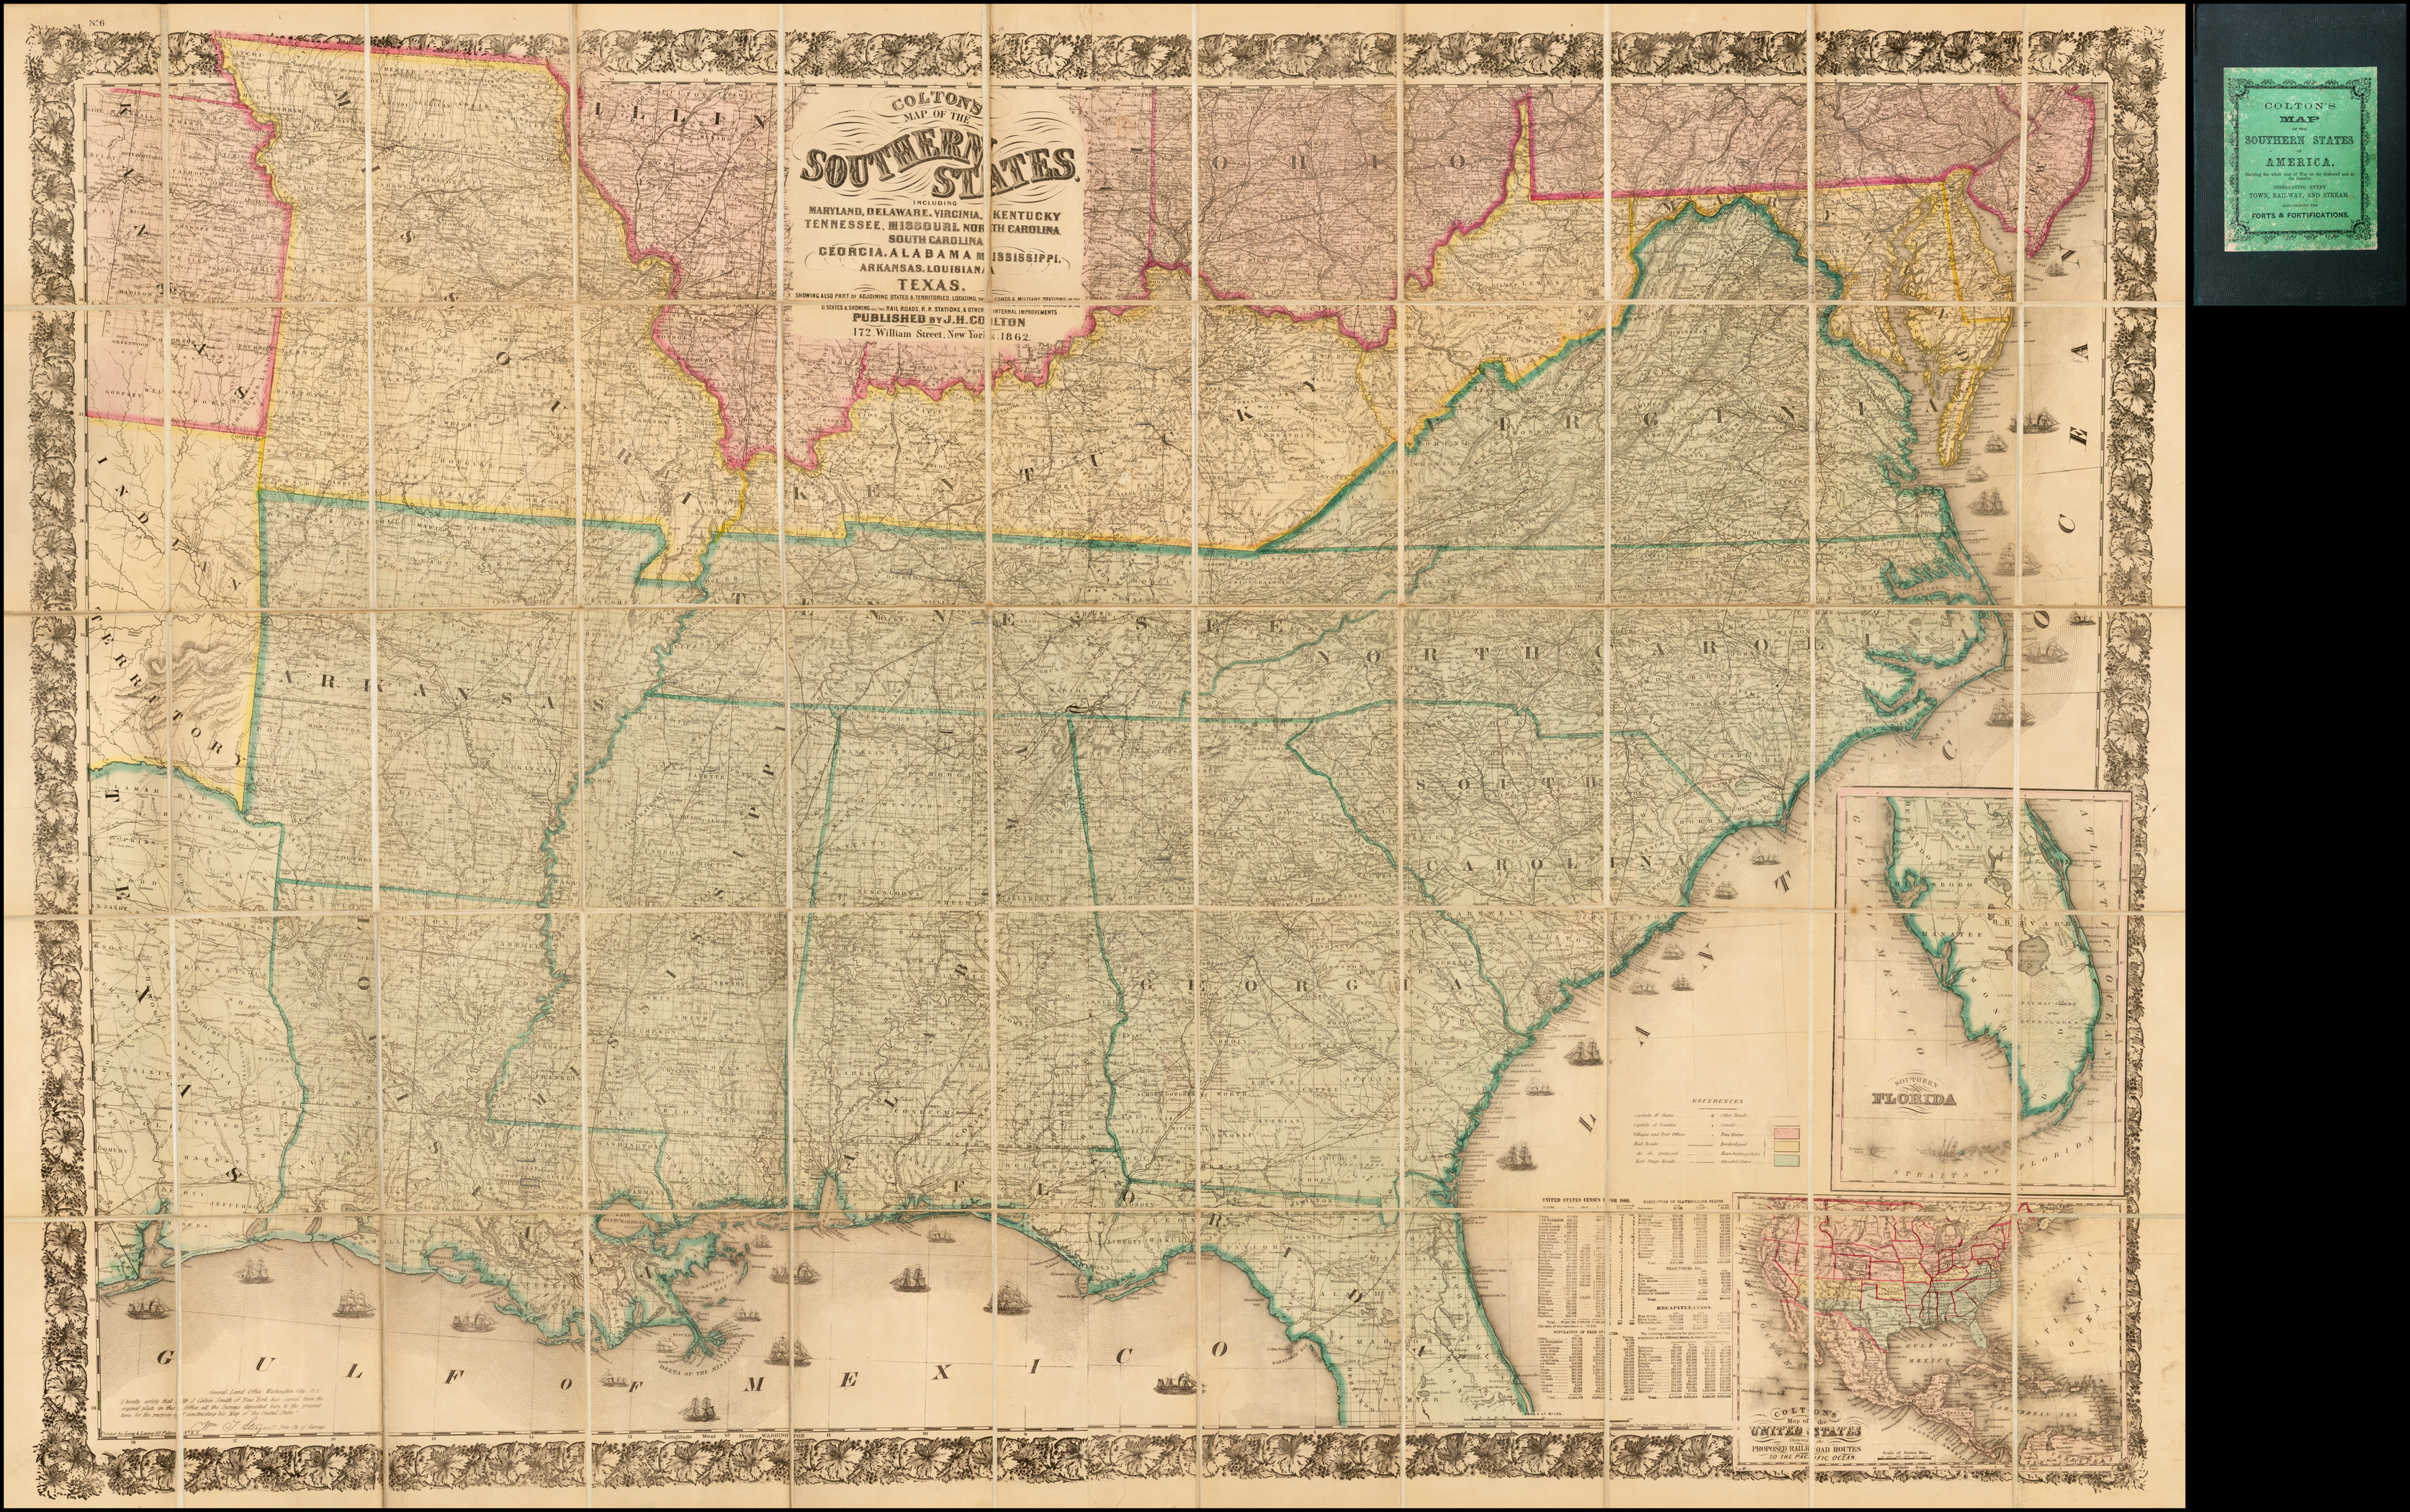 Colton's Map of the Southern States. Including Maryland ... on map of new york, map of pennsylvania, map of alabama, map of oregon, map ohio kentucky, map of idaho, map of florida, map of nashville tn, map of mississippi, map of oklahoma arkansas, map of ohio, map of louisiana, map of north carolina, map of montana, map of virginia, map of south carolina, map of washington state, map of georgia, map virginia kentucky, map of texas,